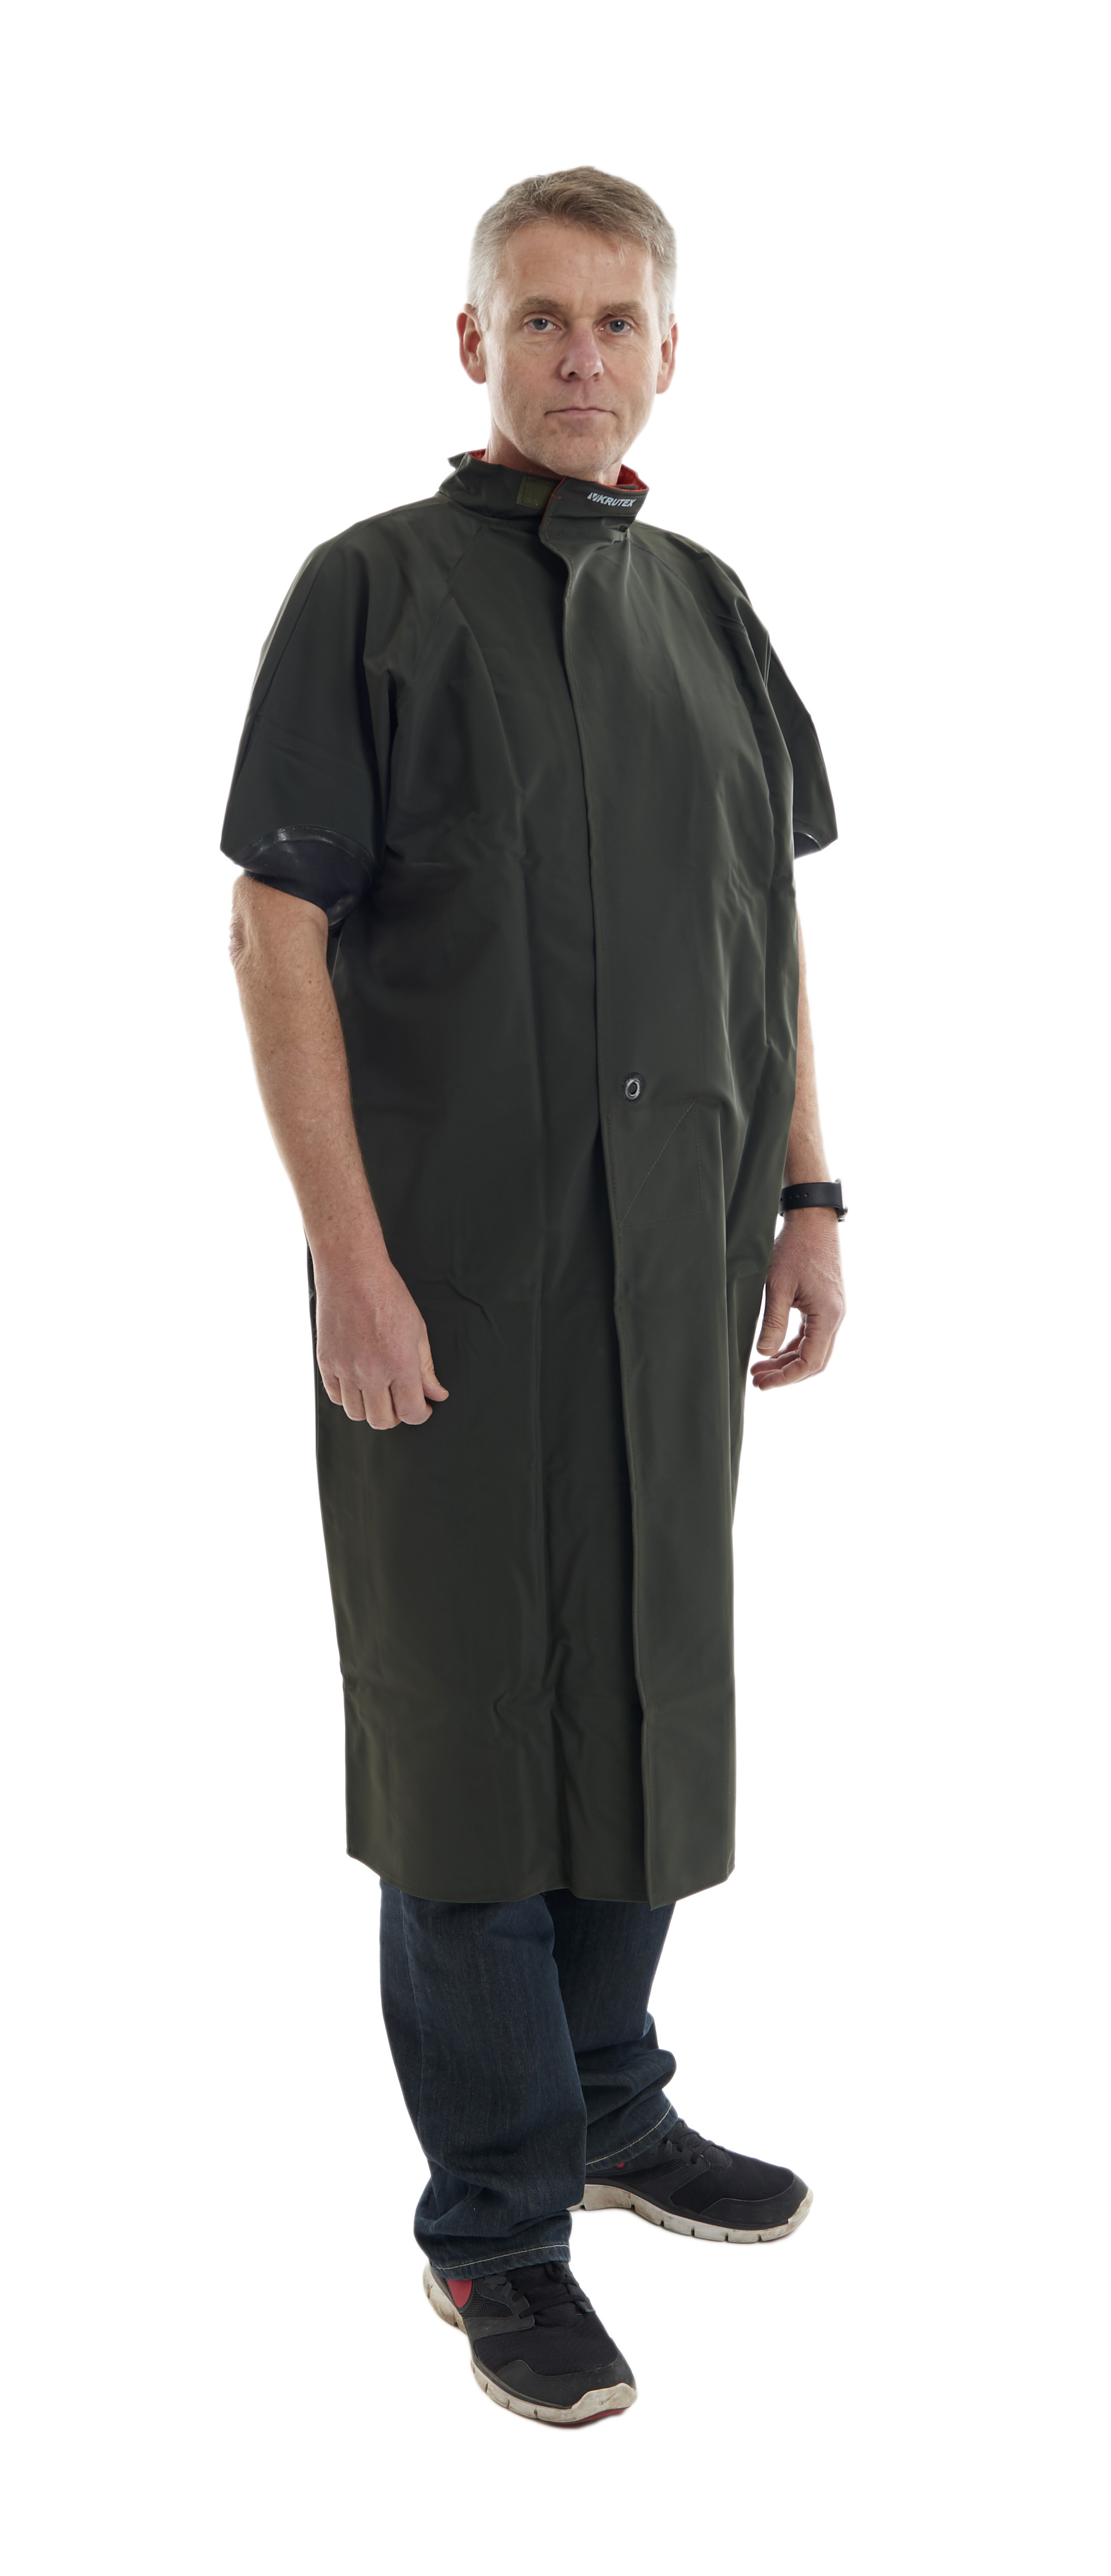 KRUTEX obstetric gown with Velcro 120 cm